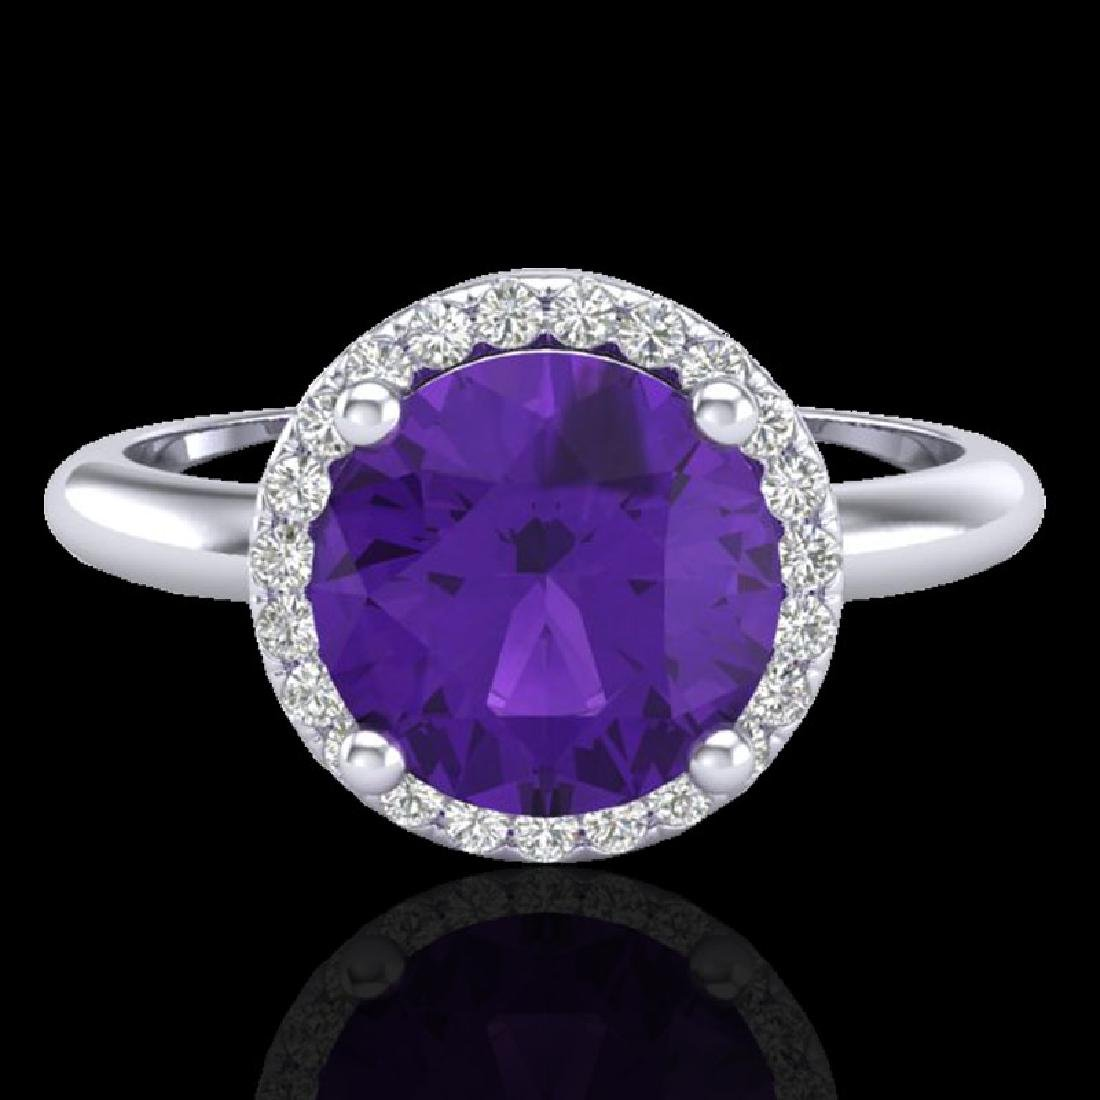 2 CTW Amethyst & Micro Pave VS/SI Diamond Ring Halo 18K